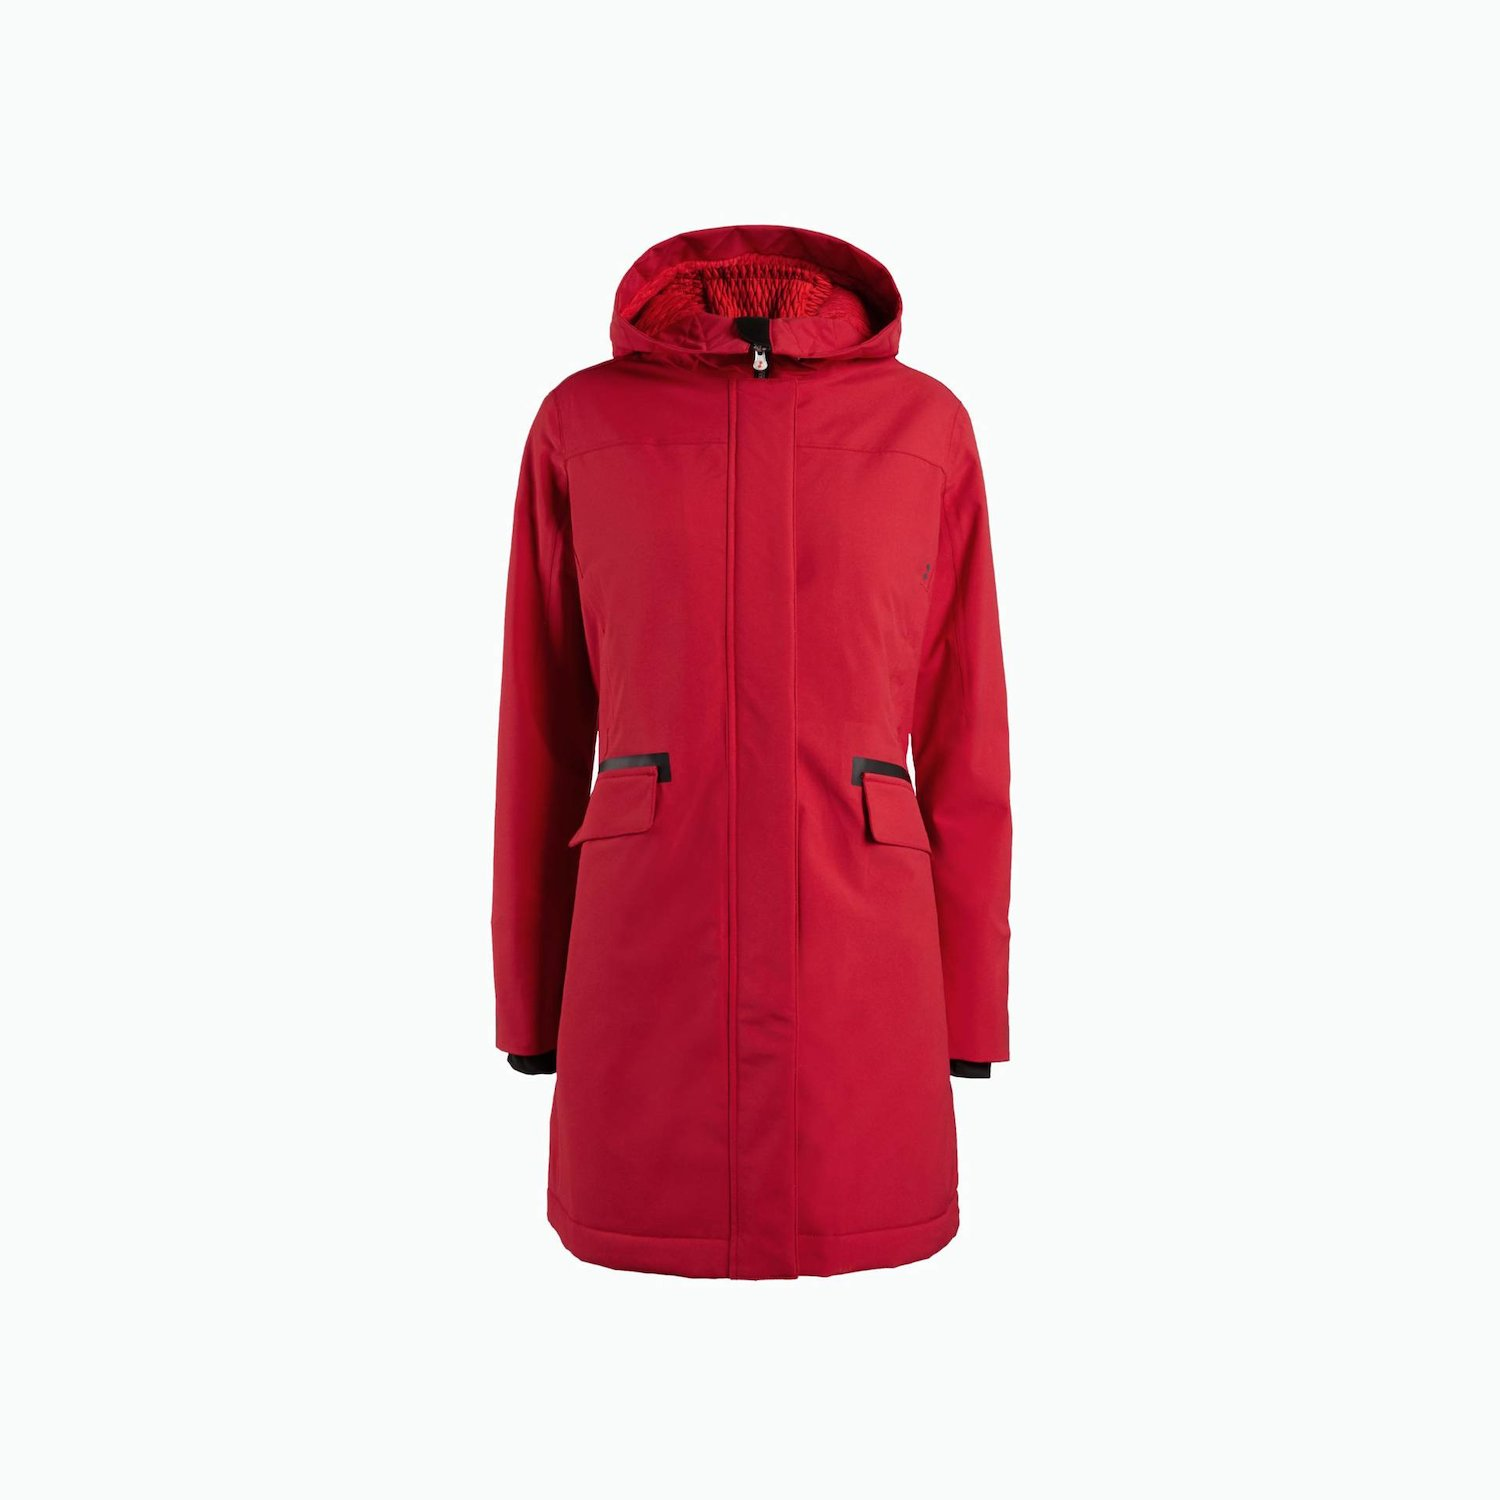 Kailua Jacket - Chili Red